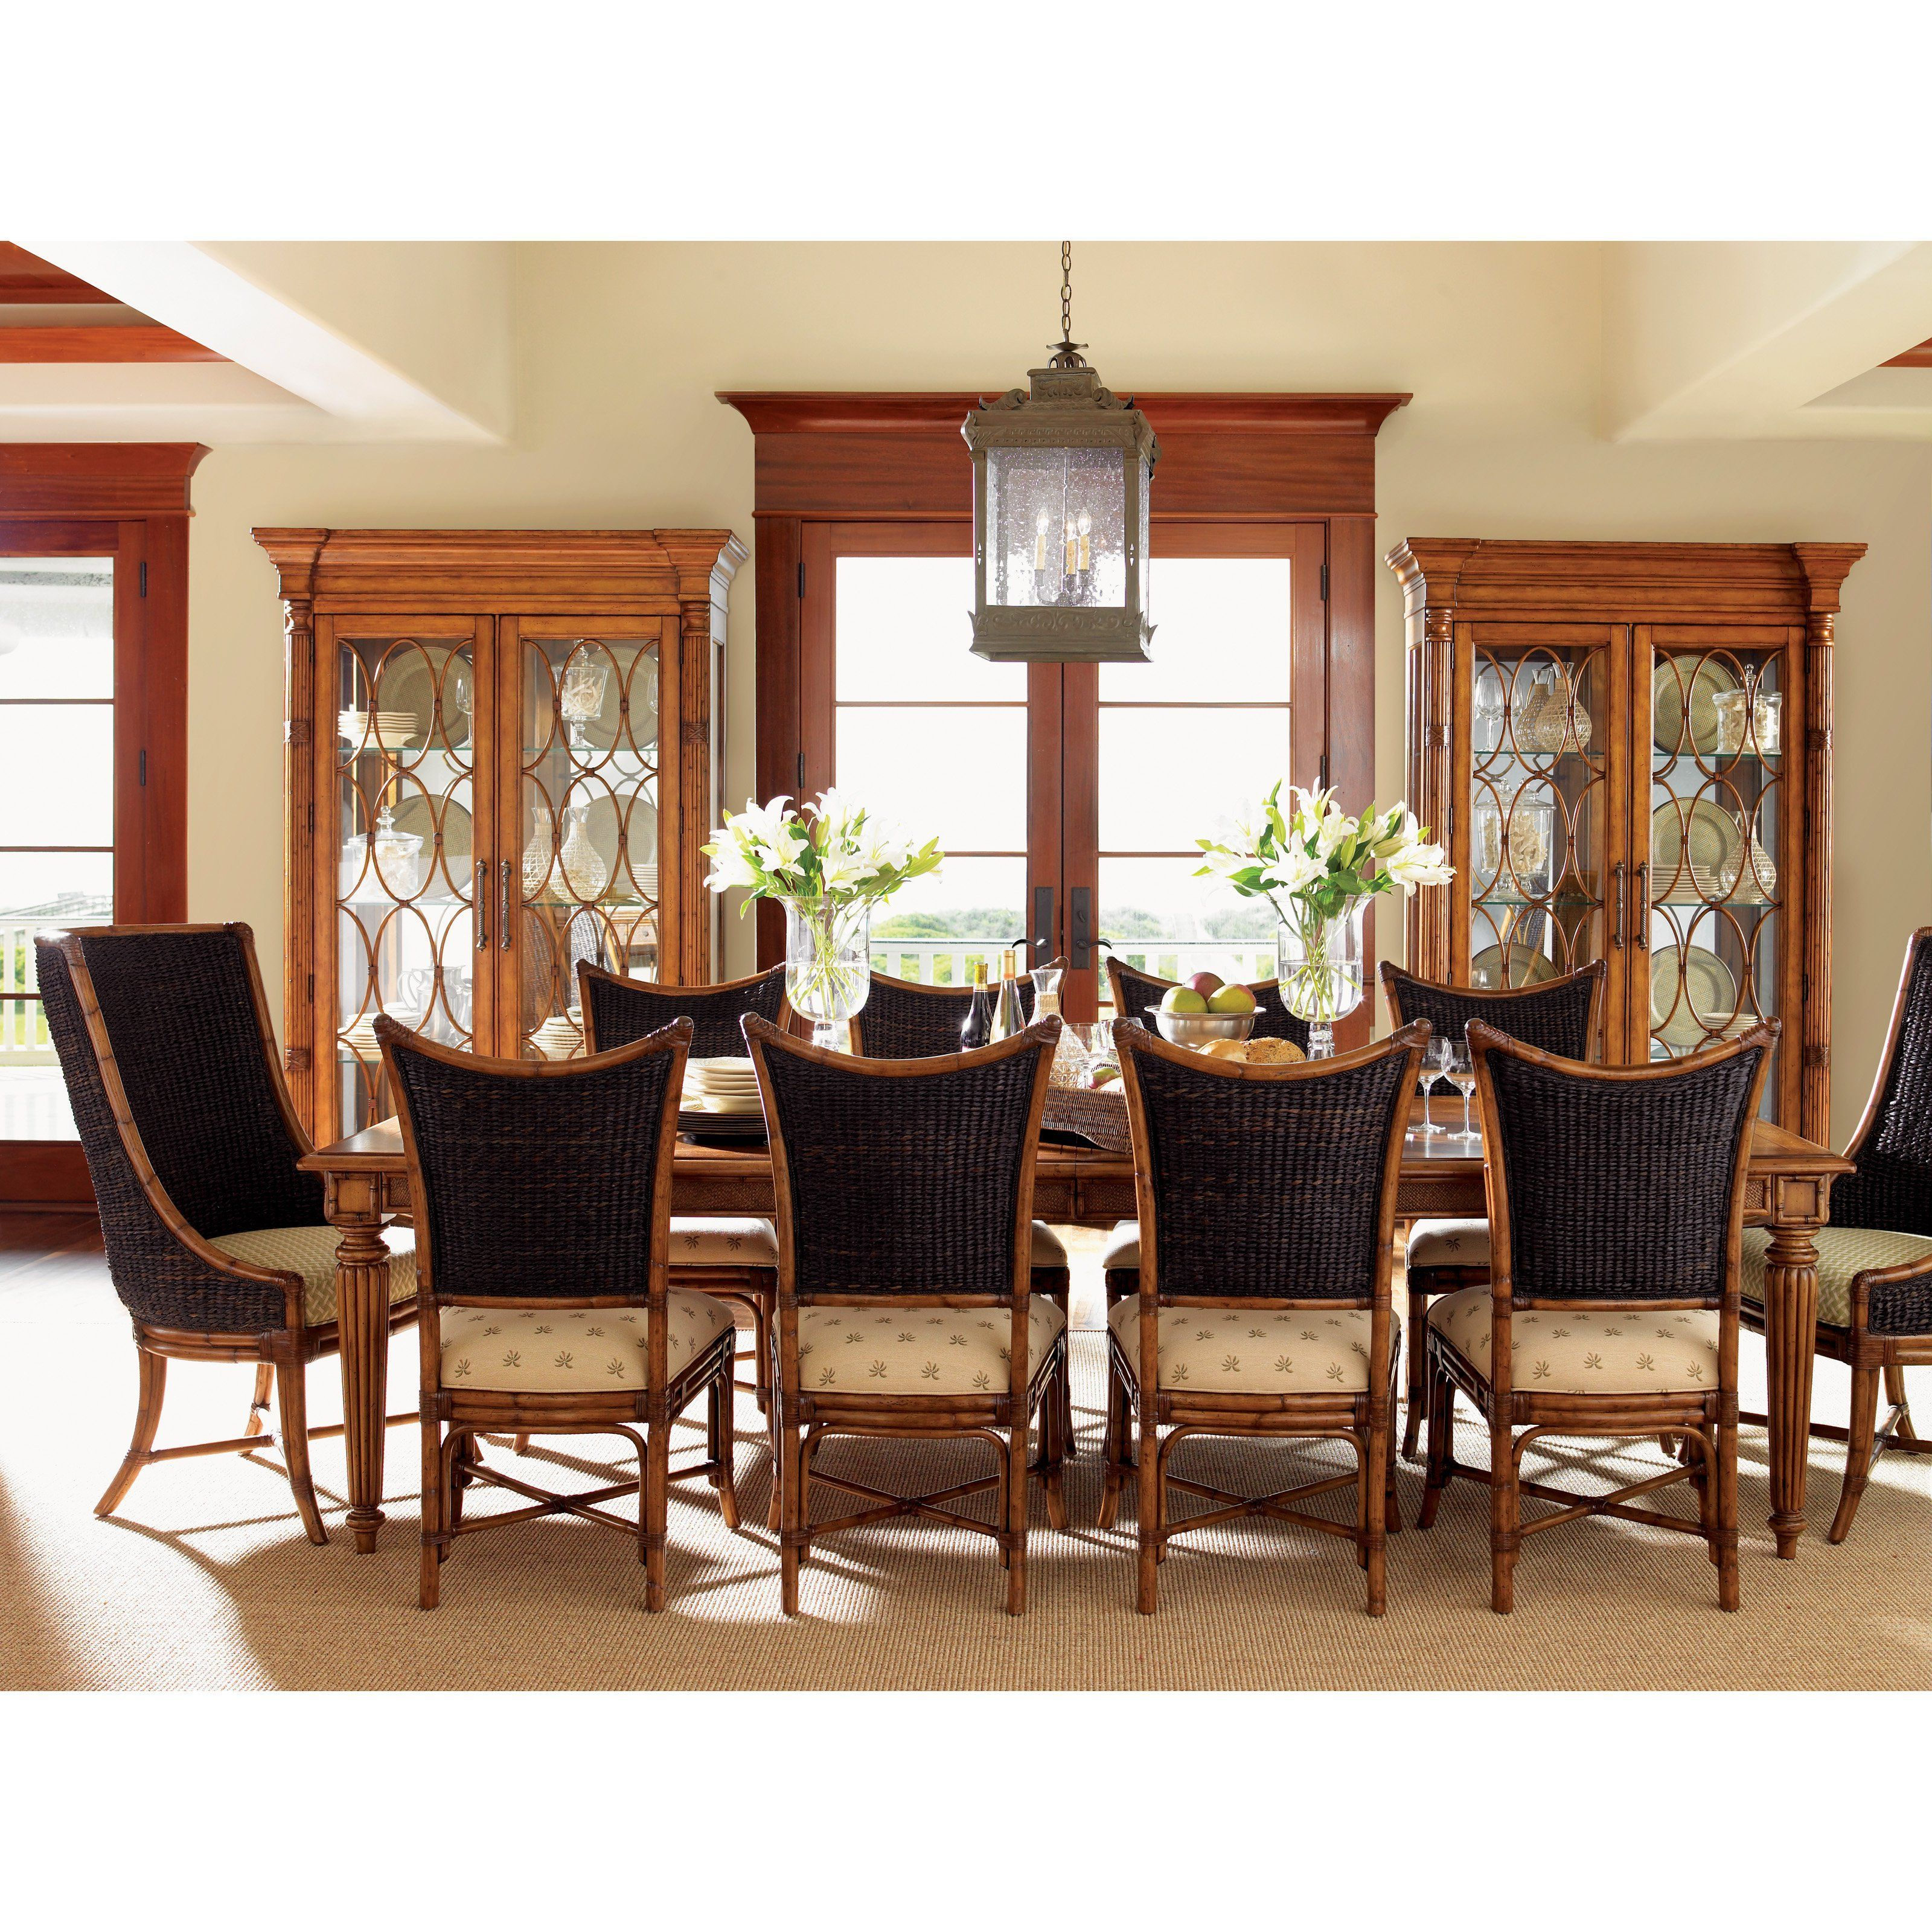 Tommy Bahama By Lexington Home Brands Island Estate 11 Piece Dining